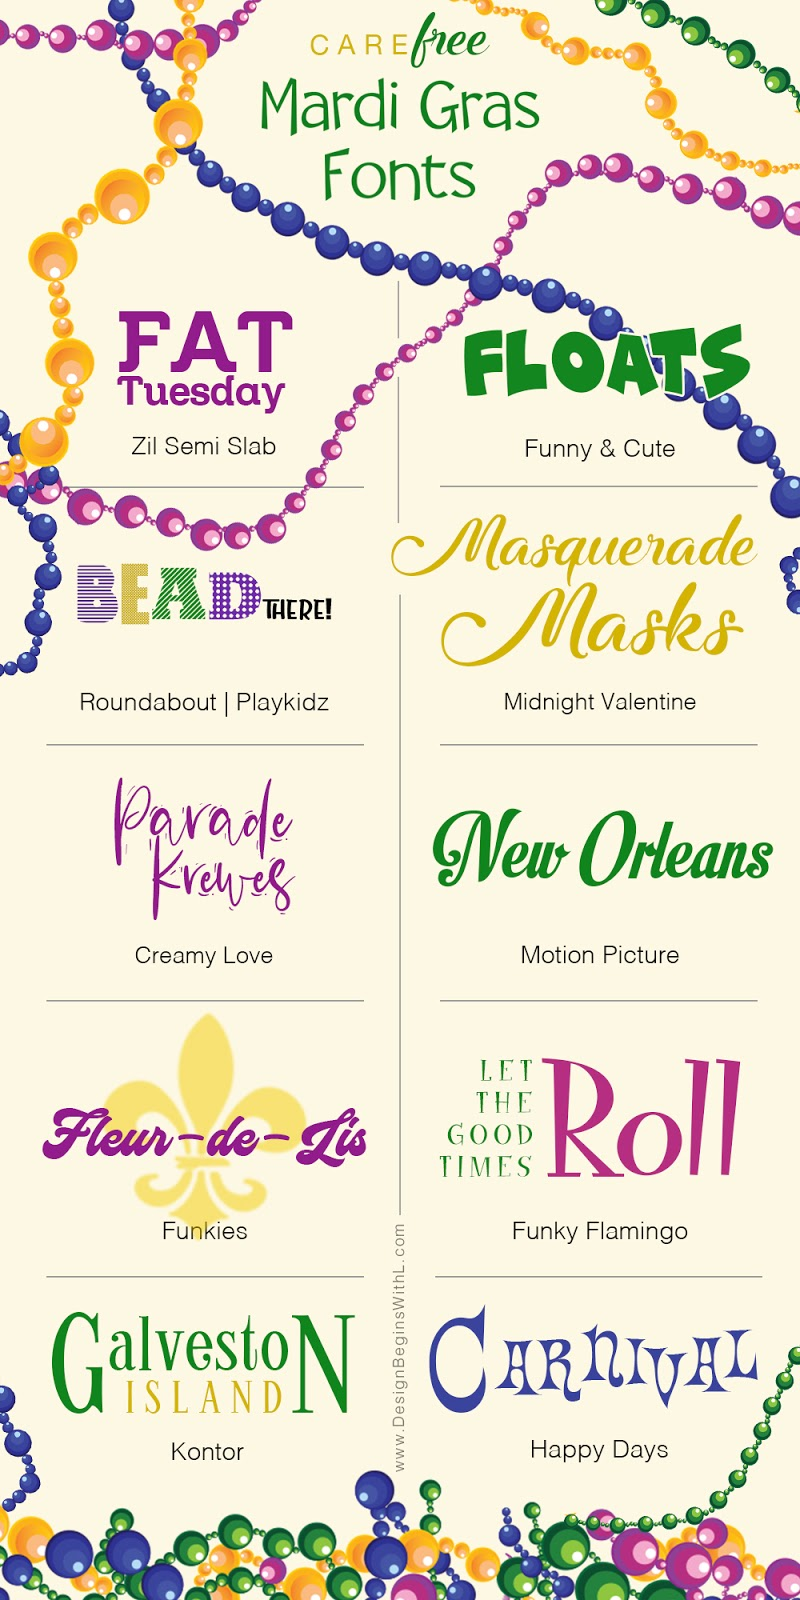 CareFREE Mardi Gras Fonts